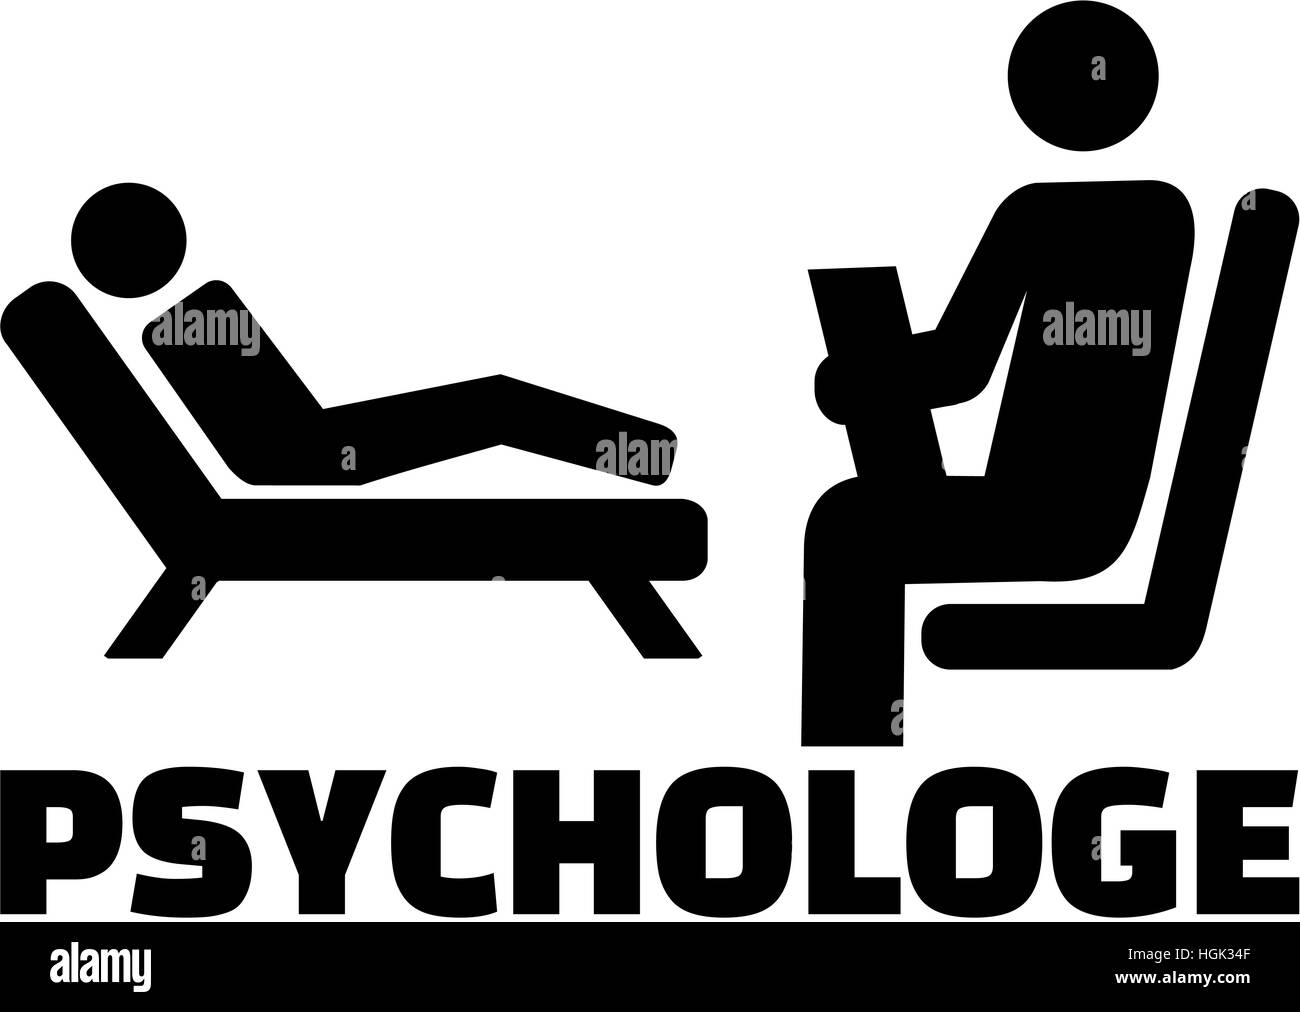 German Psychiatrist Black and White Stock Photos & Images - Alamy